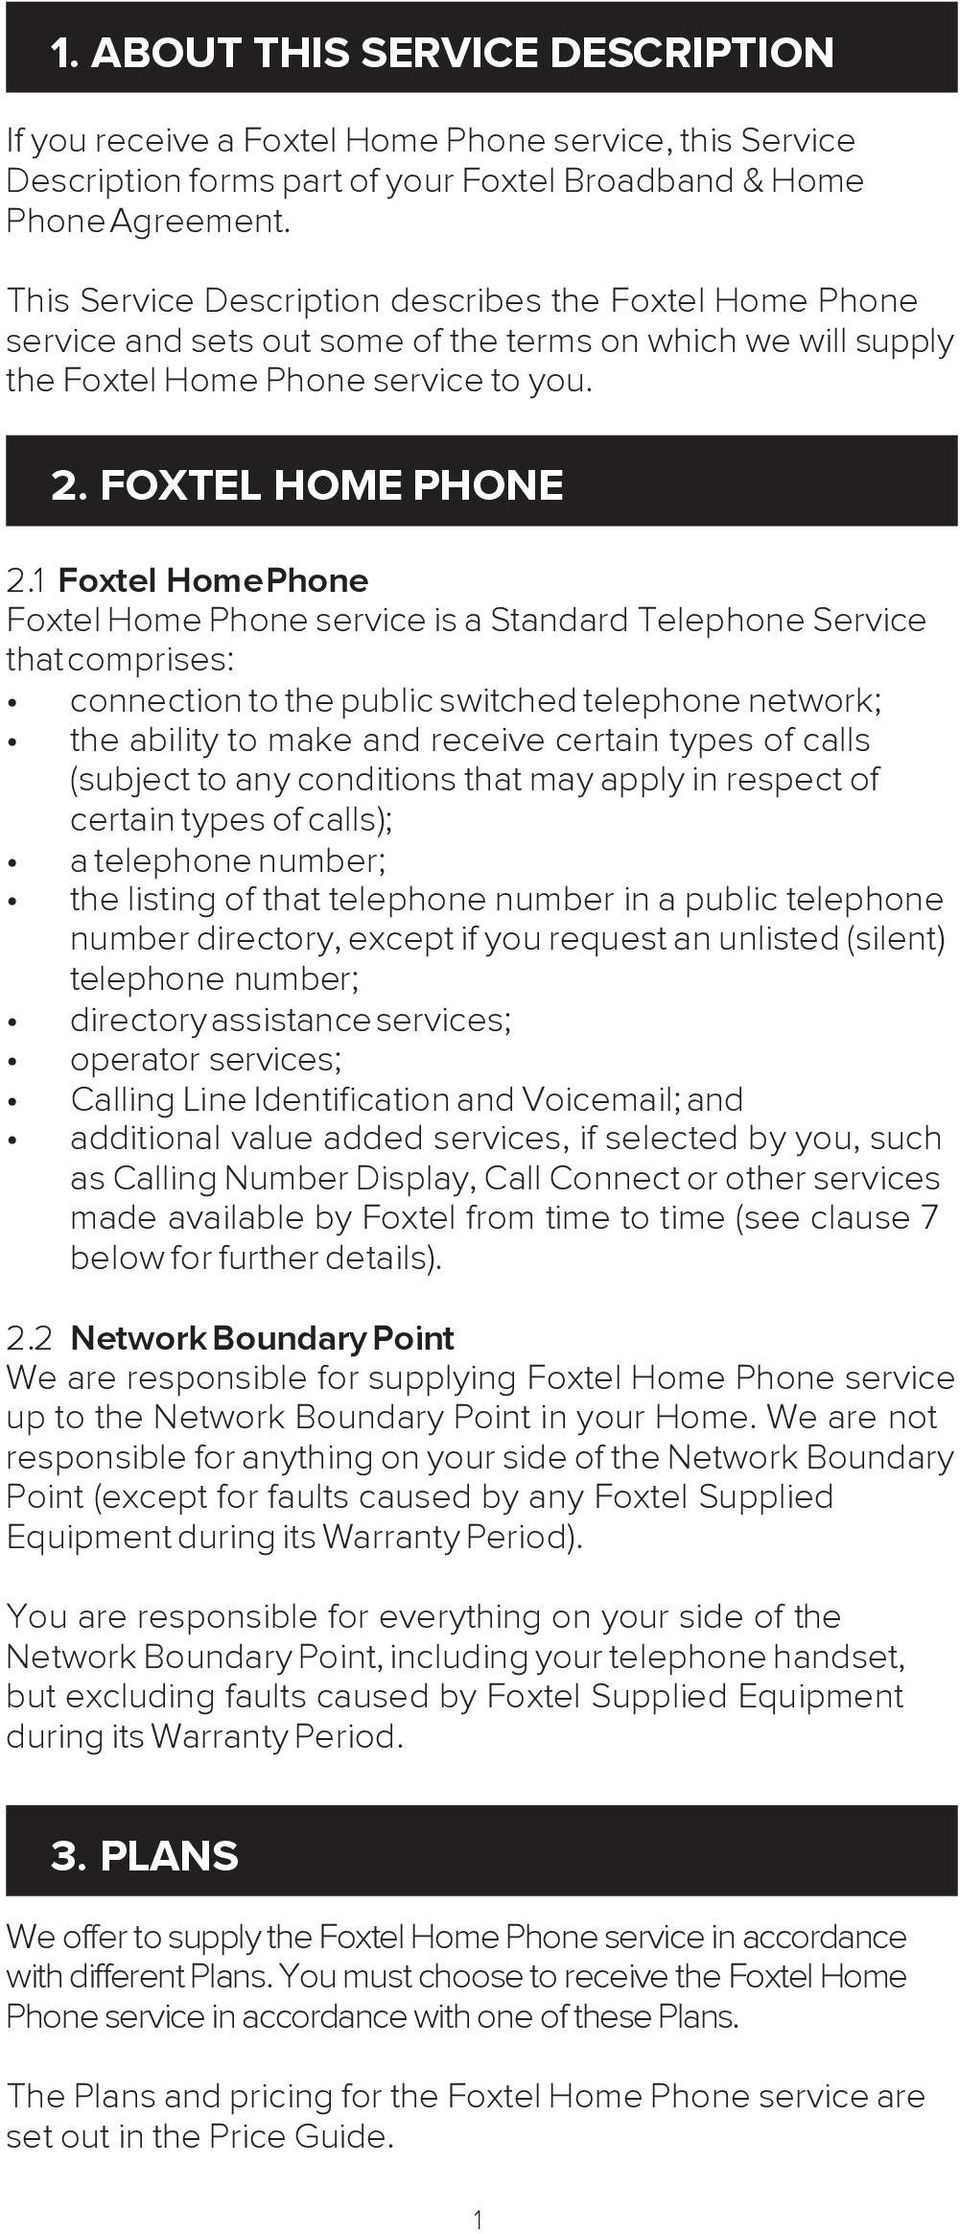 1 Foxtel Home Phone Foxtel Home Phone service is a Standard Telephone Service that comprises: connection to the public switched telephone network; the ability to make and receive certain types of